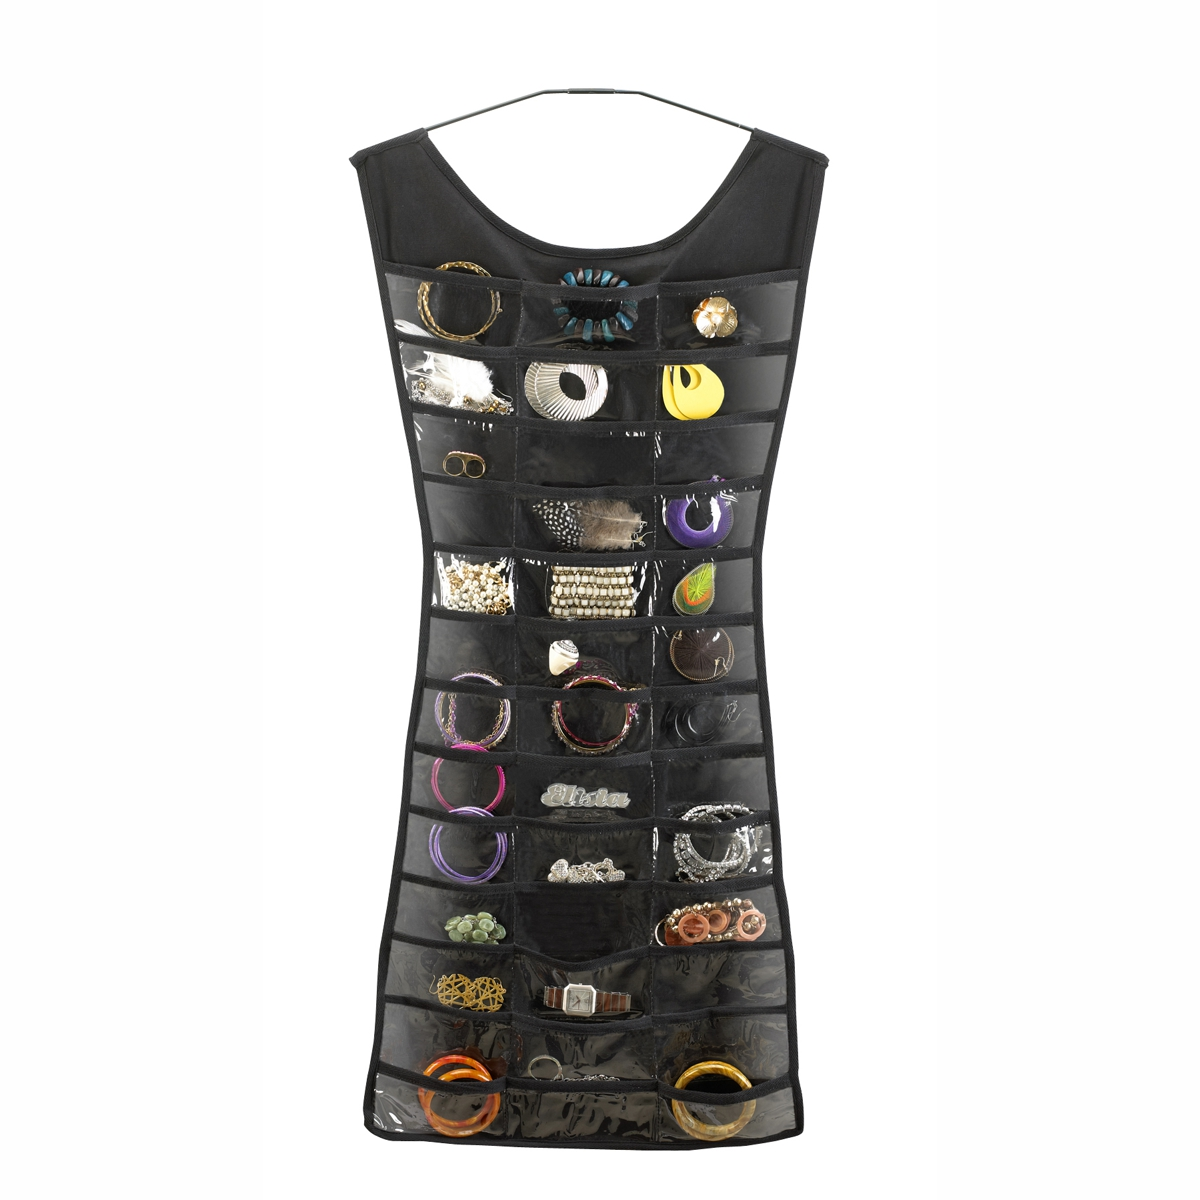 Umbra Little Black Dress Jewellery Organiser H107cm x W46.5cm